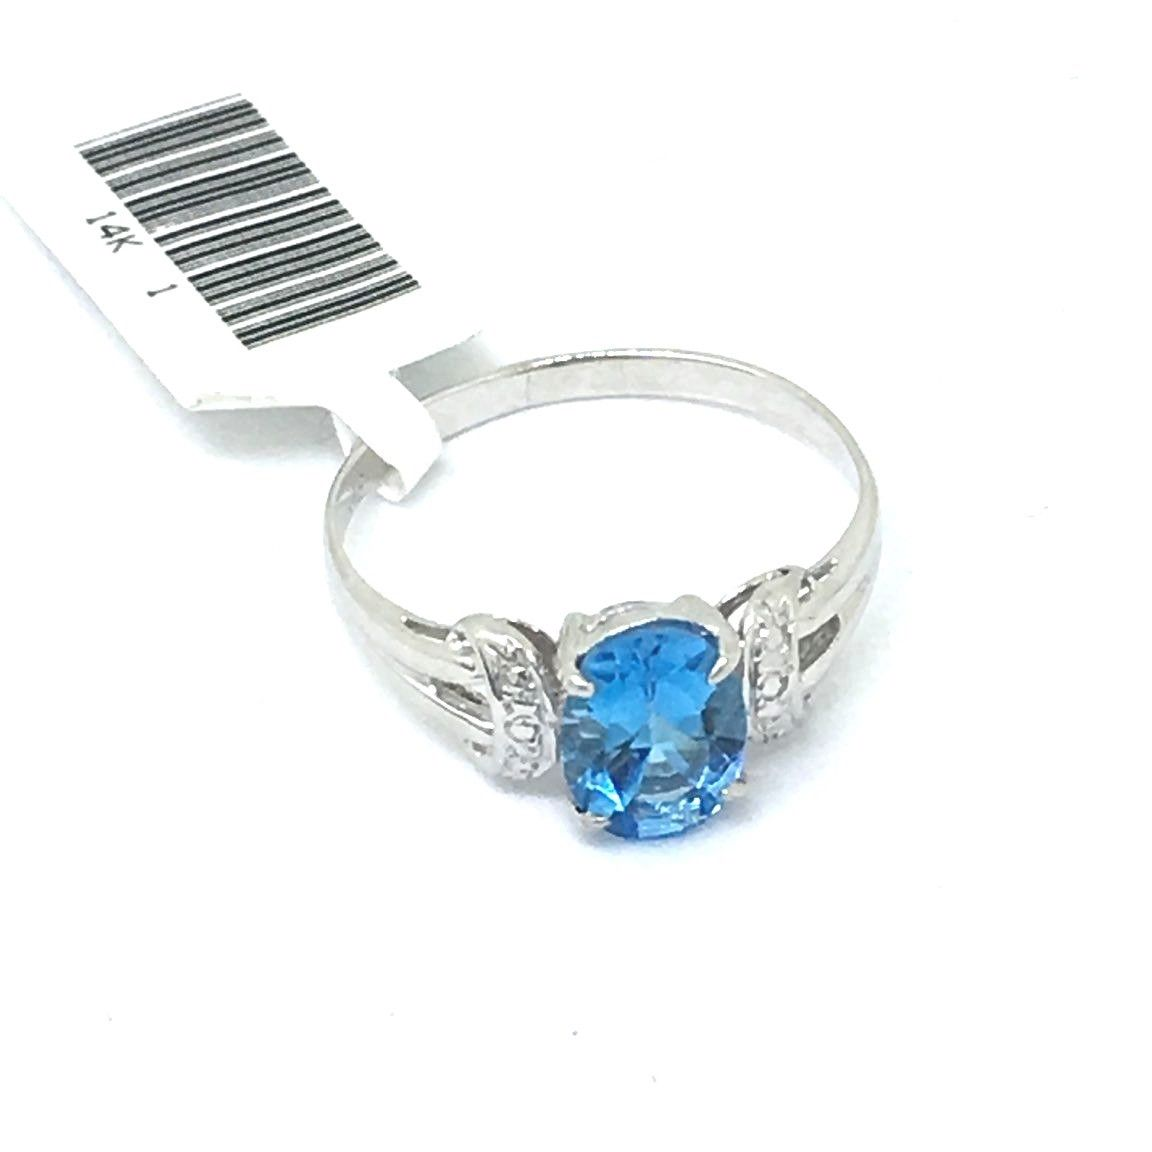 14K white gold and Genuine Oval 2.3 ct.Blue Topaz Ring $400 NWT Size 7 1/4